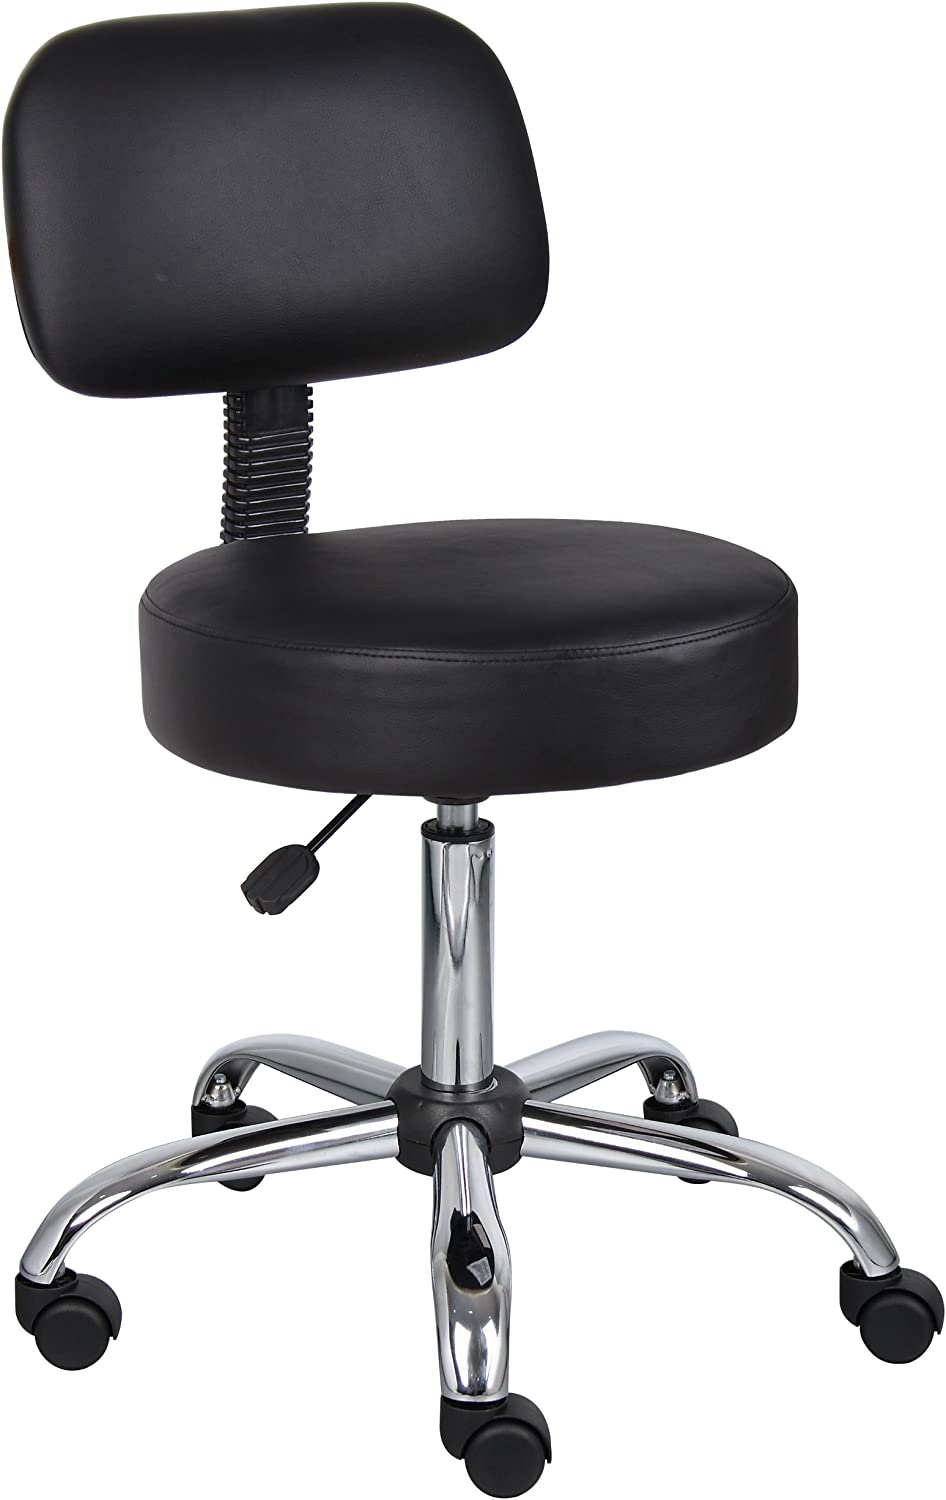 Boss Office Products Be Well Medical Stool – A sewing chair that offers a lot of cushioning